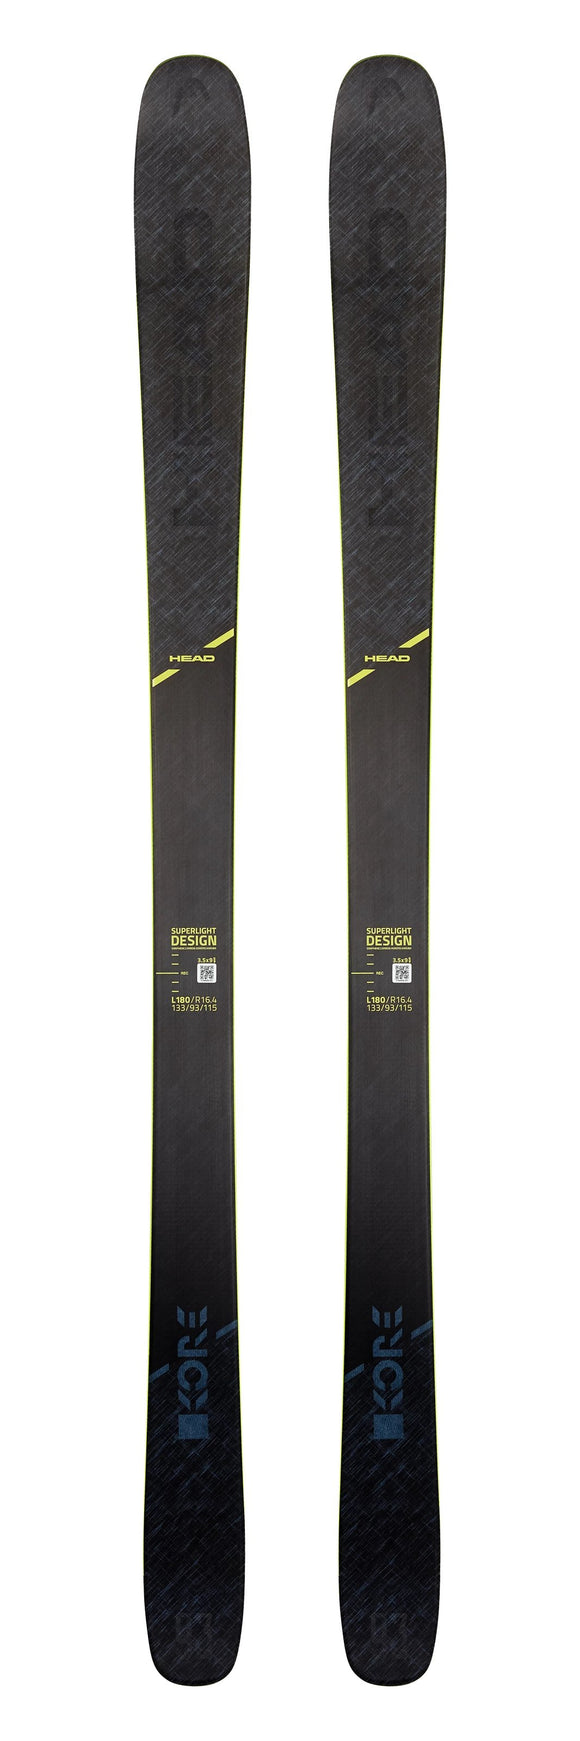 HEAD 2020 Head Kore 93 snow skis - ProSkiGuy